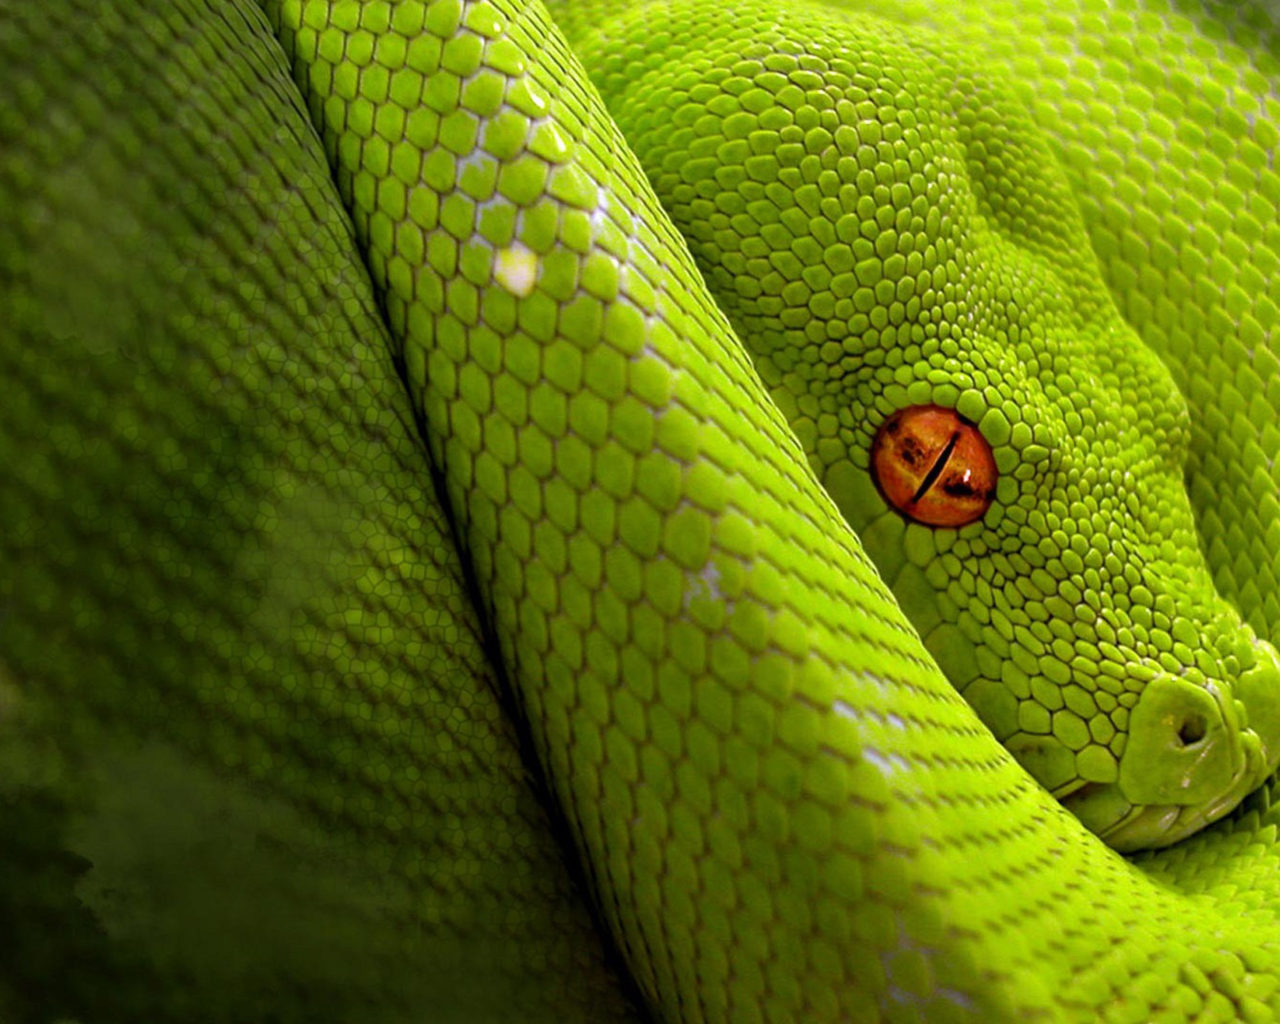 Free Download Cute Baby Wallpaper For Pc Animal Green Snake Close Up Hd Wallpaper Wallpapers13 Com